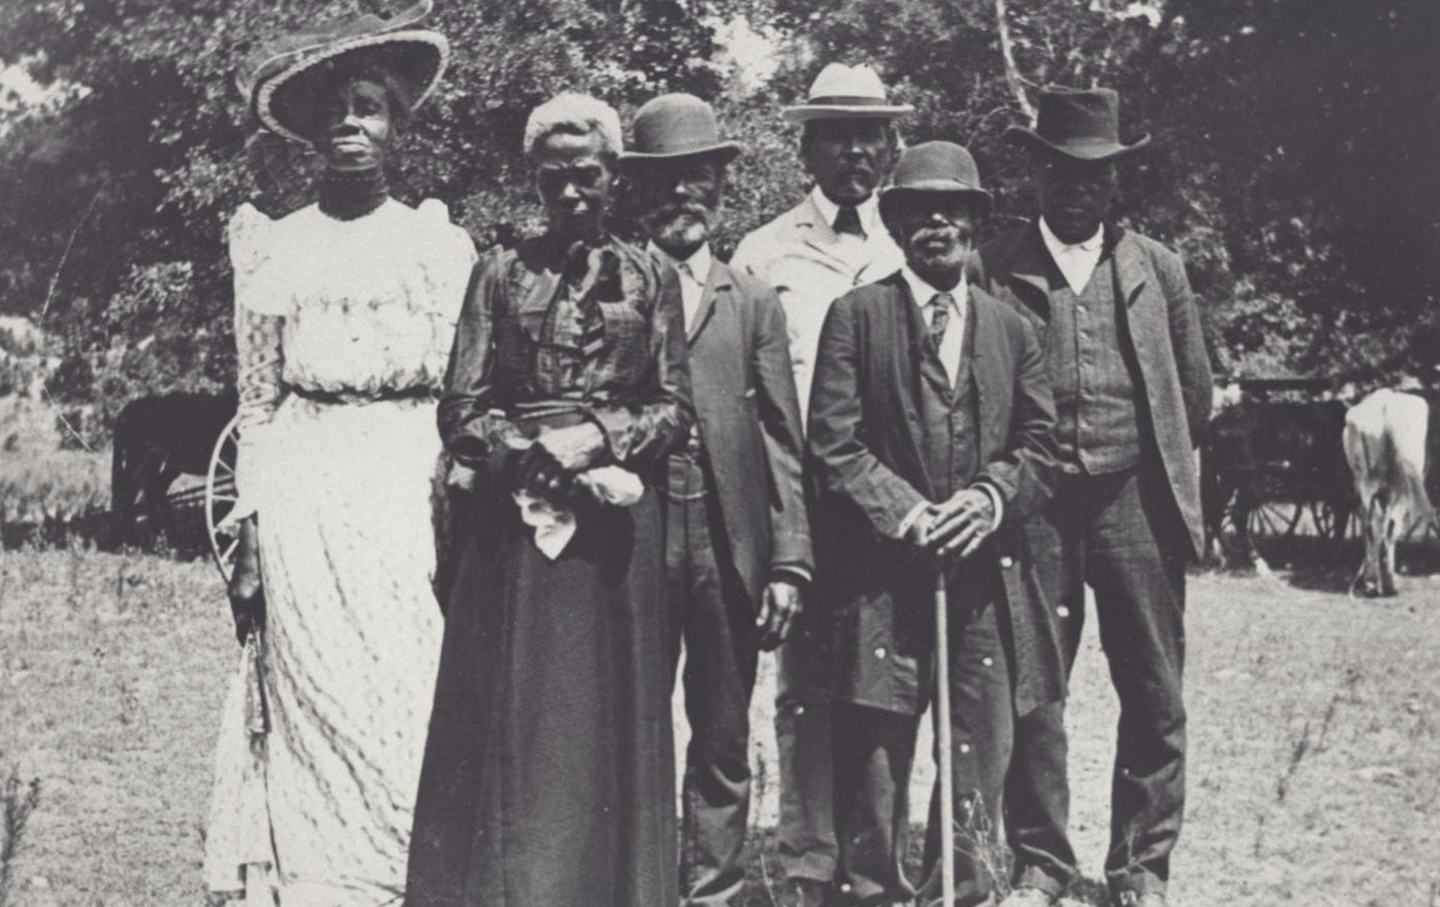 Black men and women dressed for an emancipation day celebration in Texas